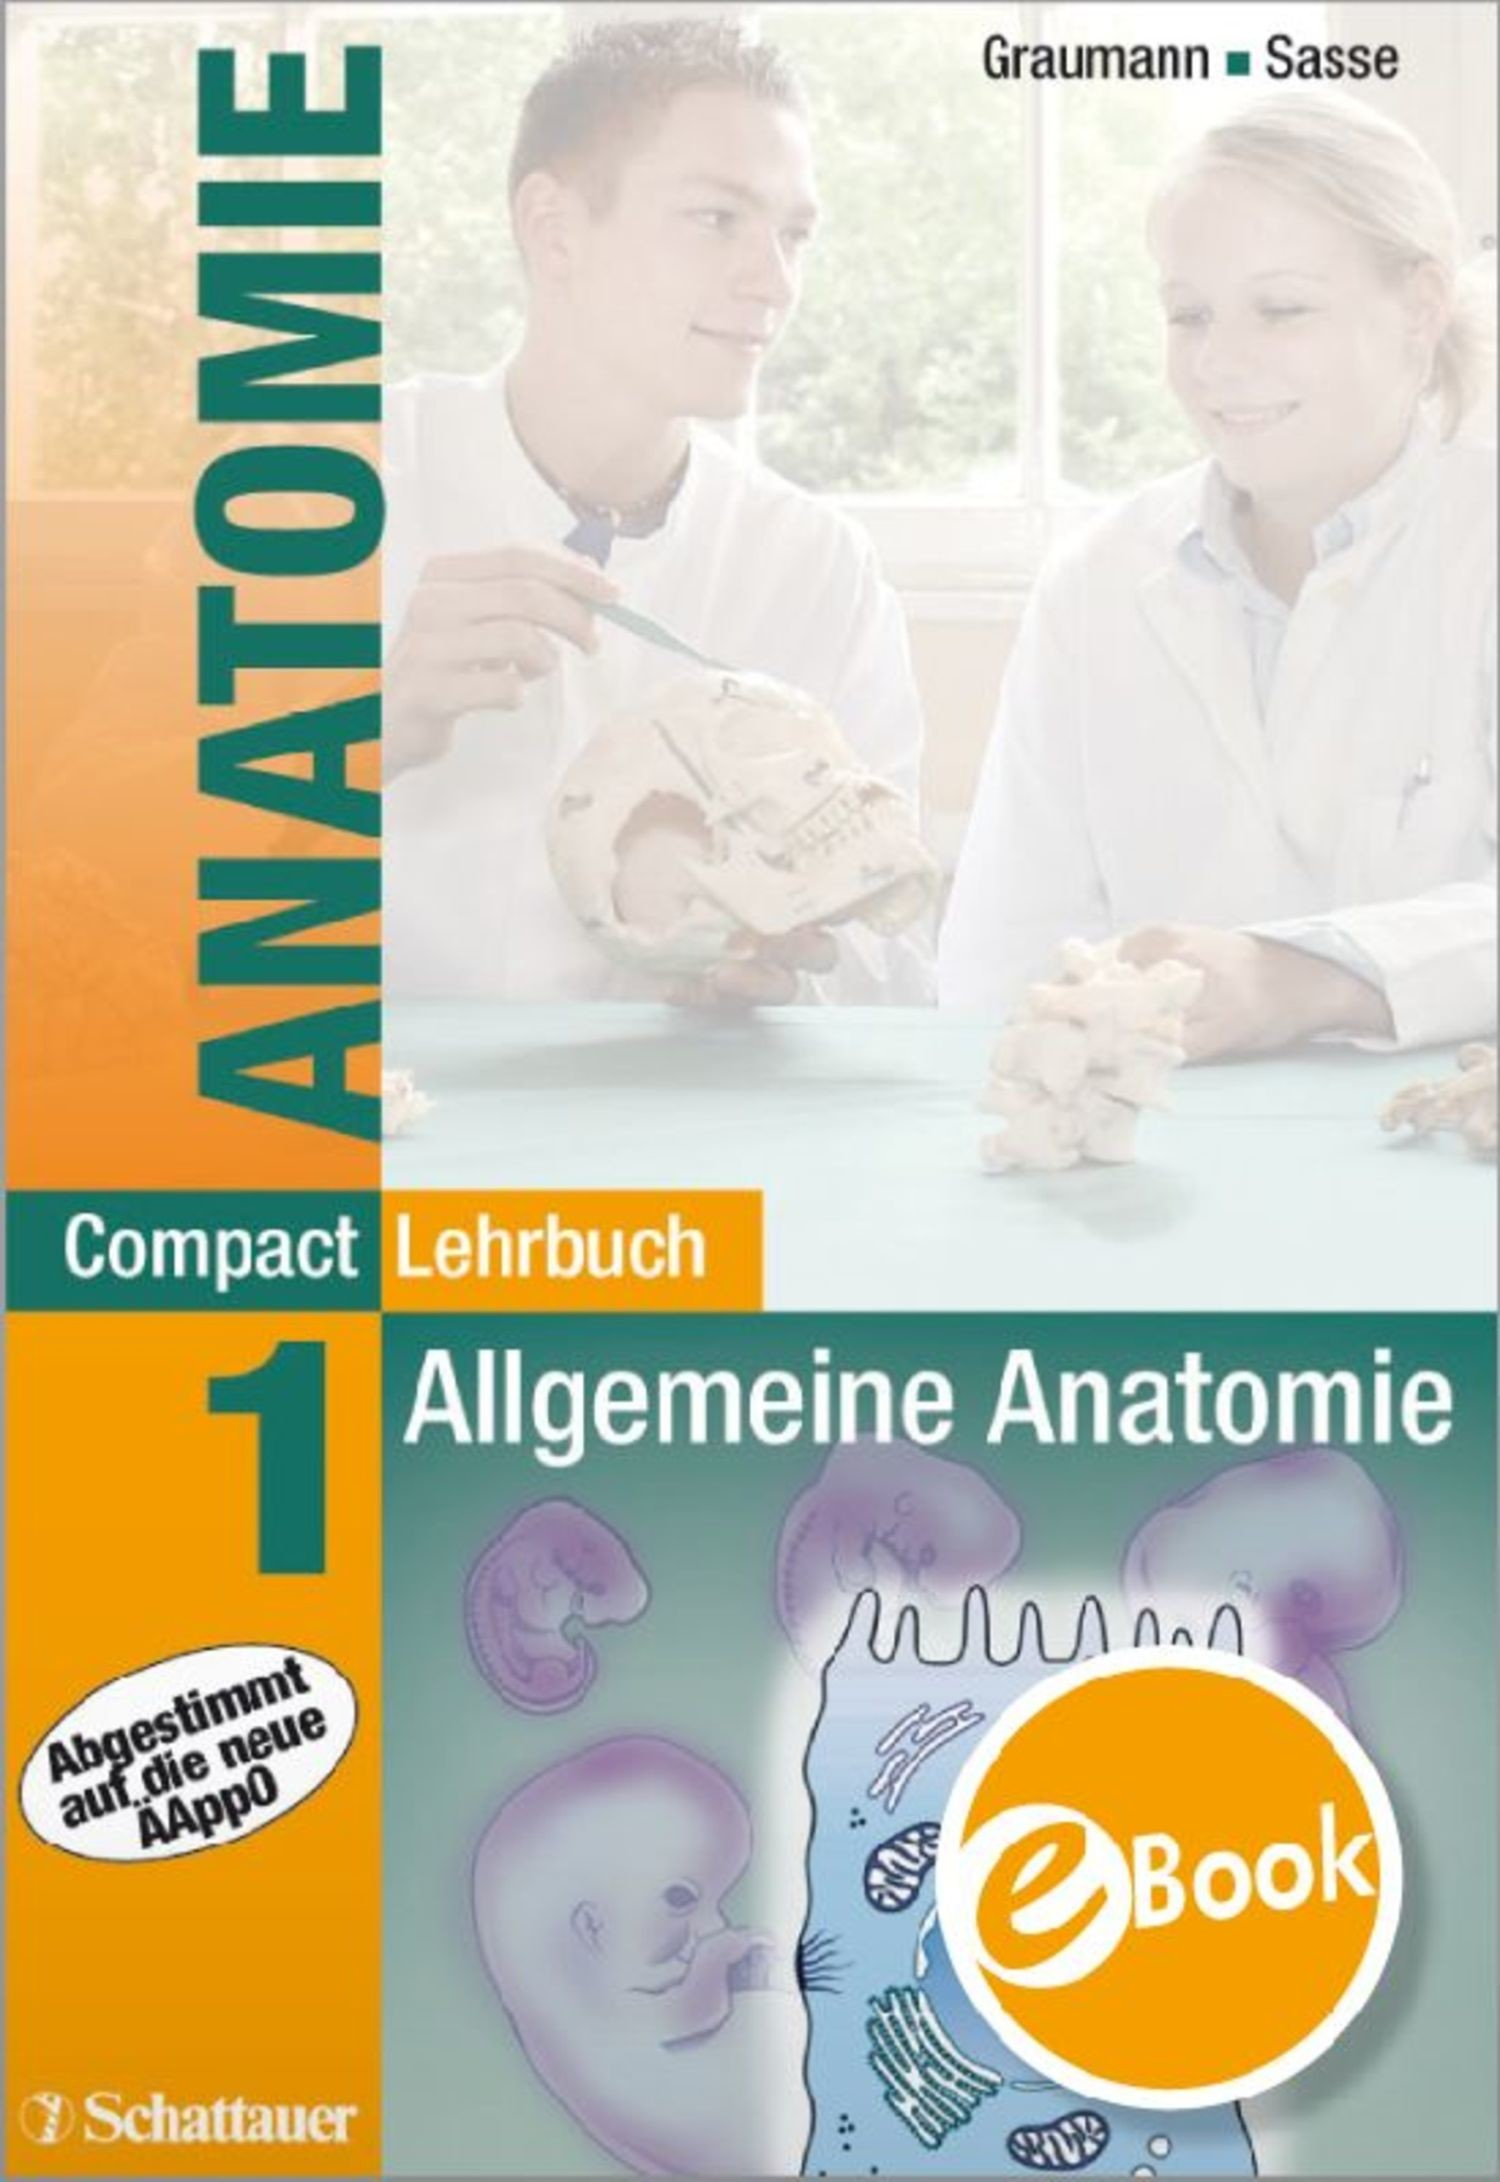 Compact Lehrbuch Anatomie 1